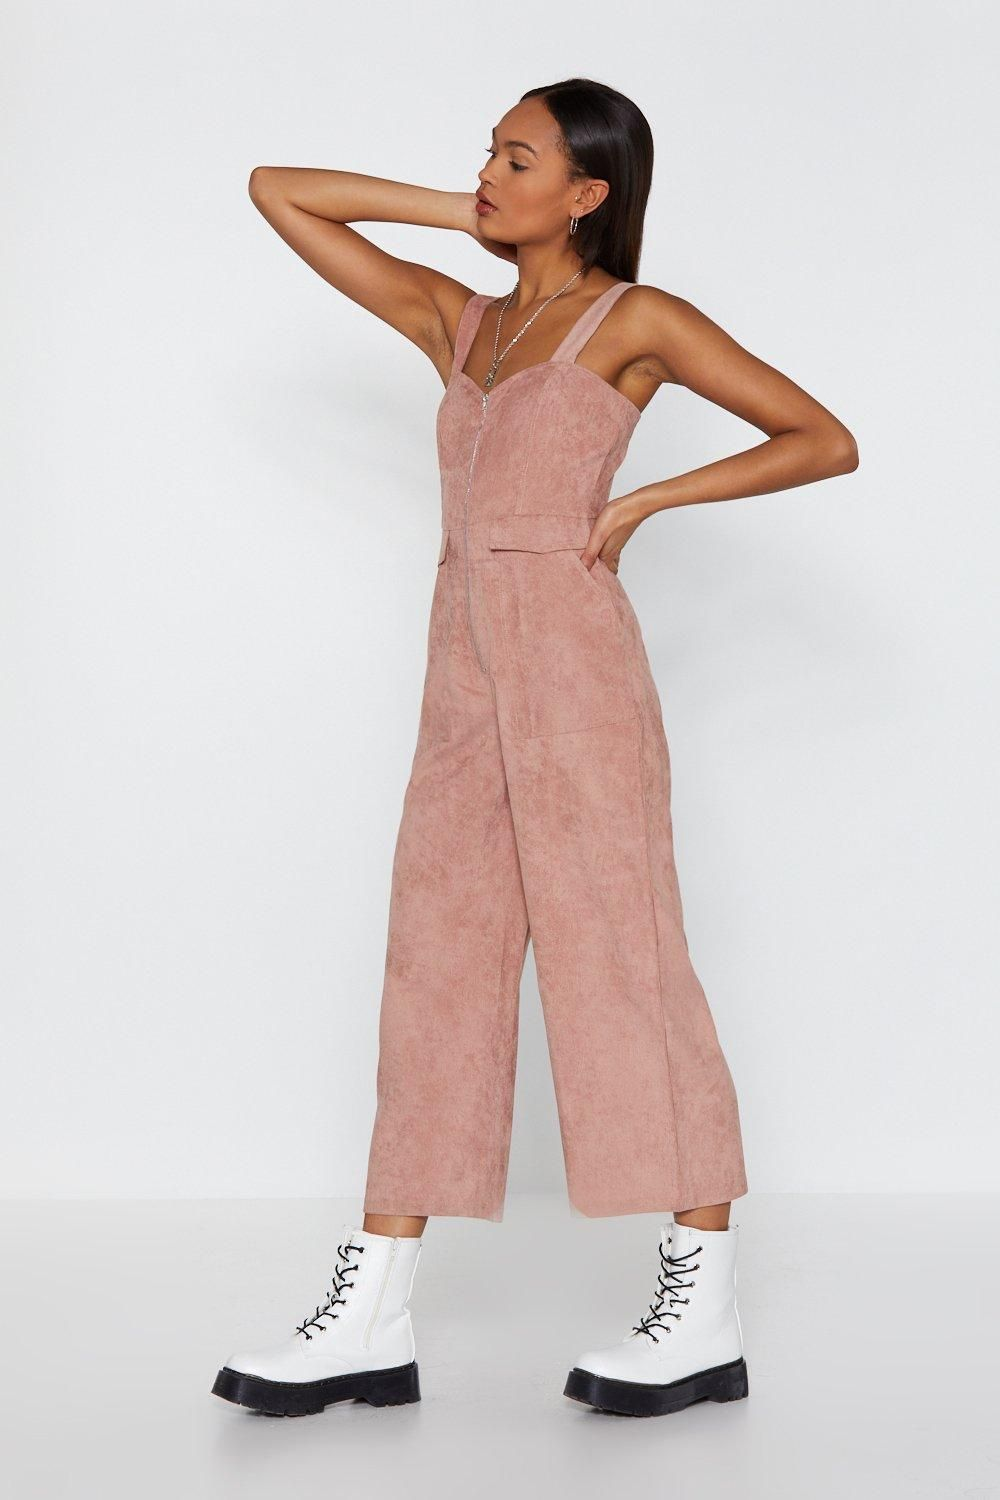 f3a22c778b6d0 Who do you pink you are? This jumpsuit comes in corduroy and features a  sweetheart neckline, cropped, wide-leg silhouette, pockets at sides, and zip  closure ...